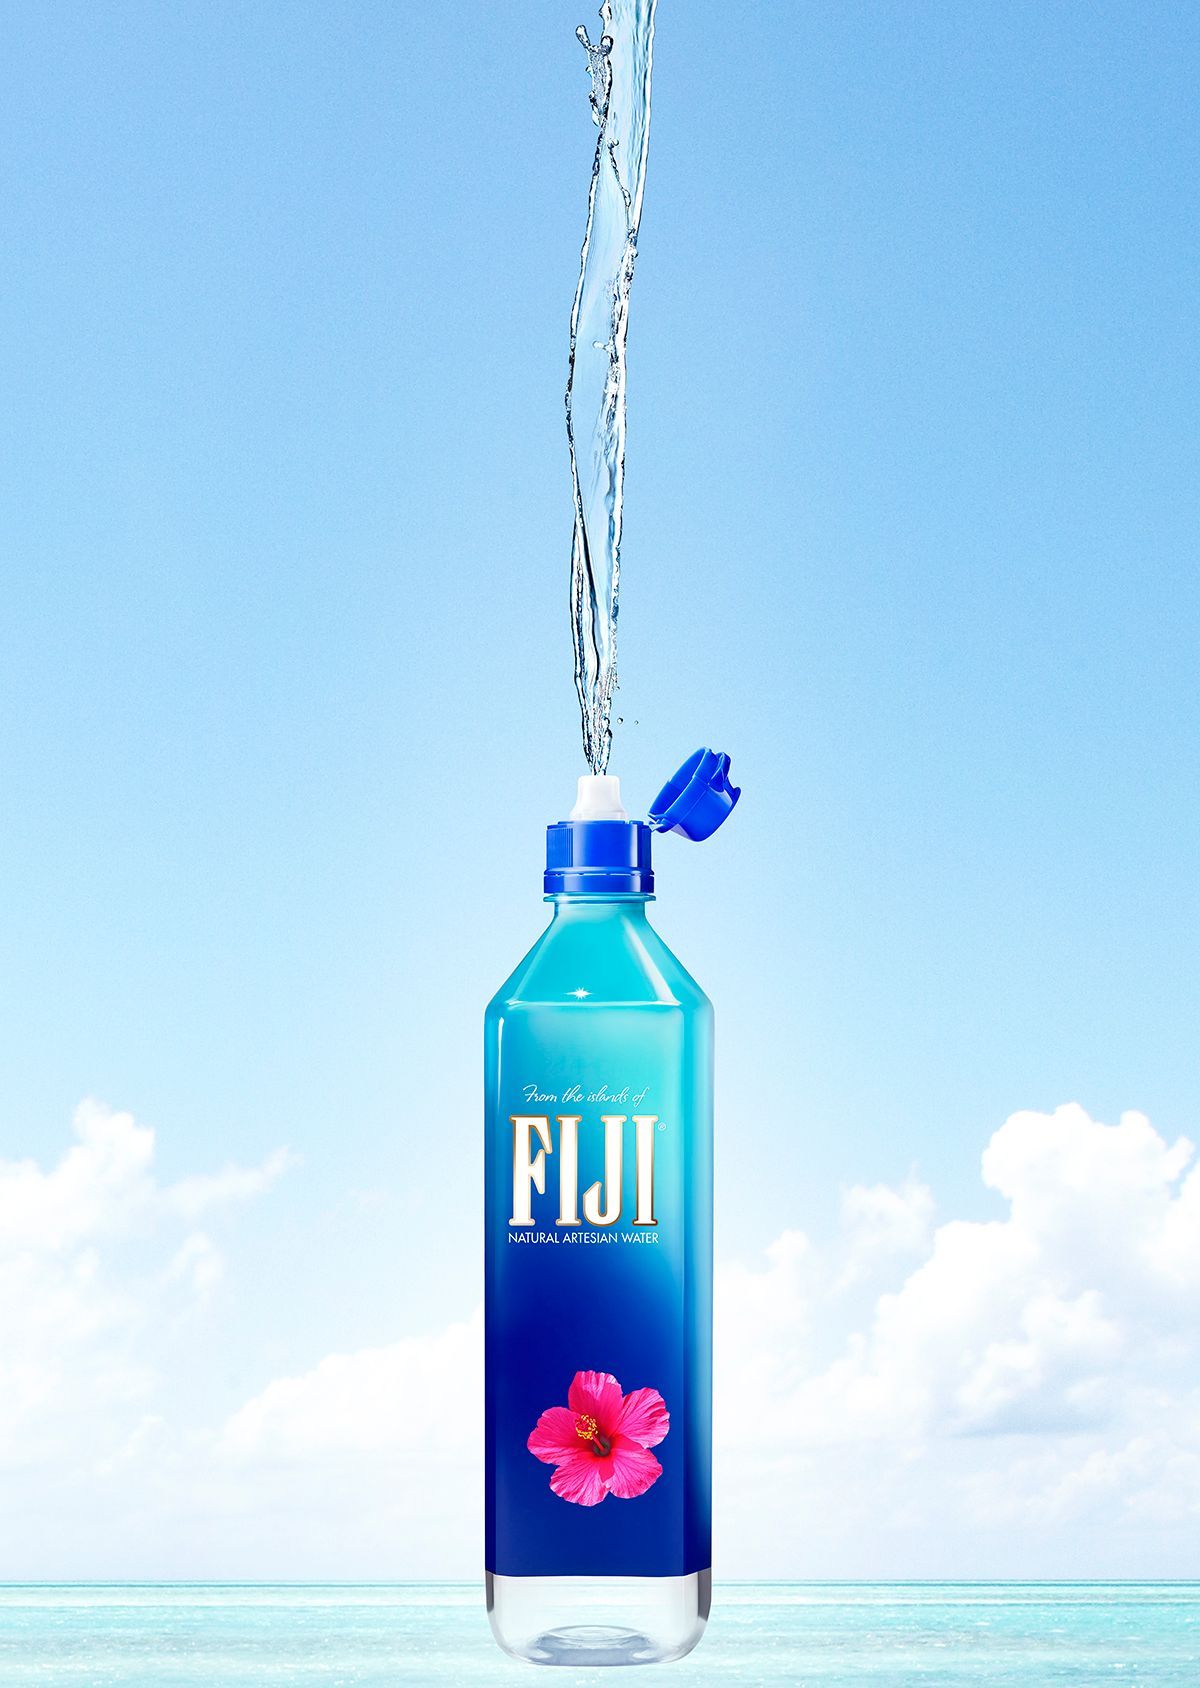 Fiji_Bottle_Context_079-b3.jpg